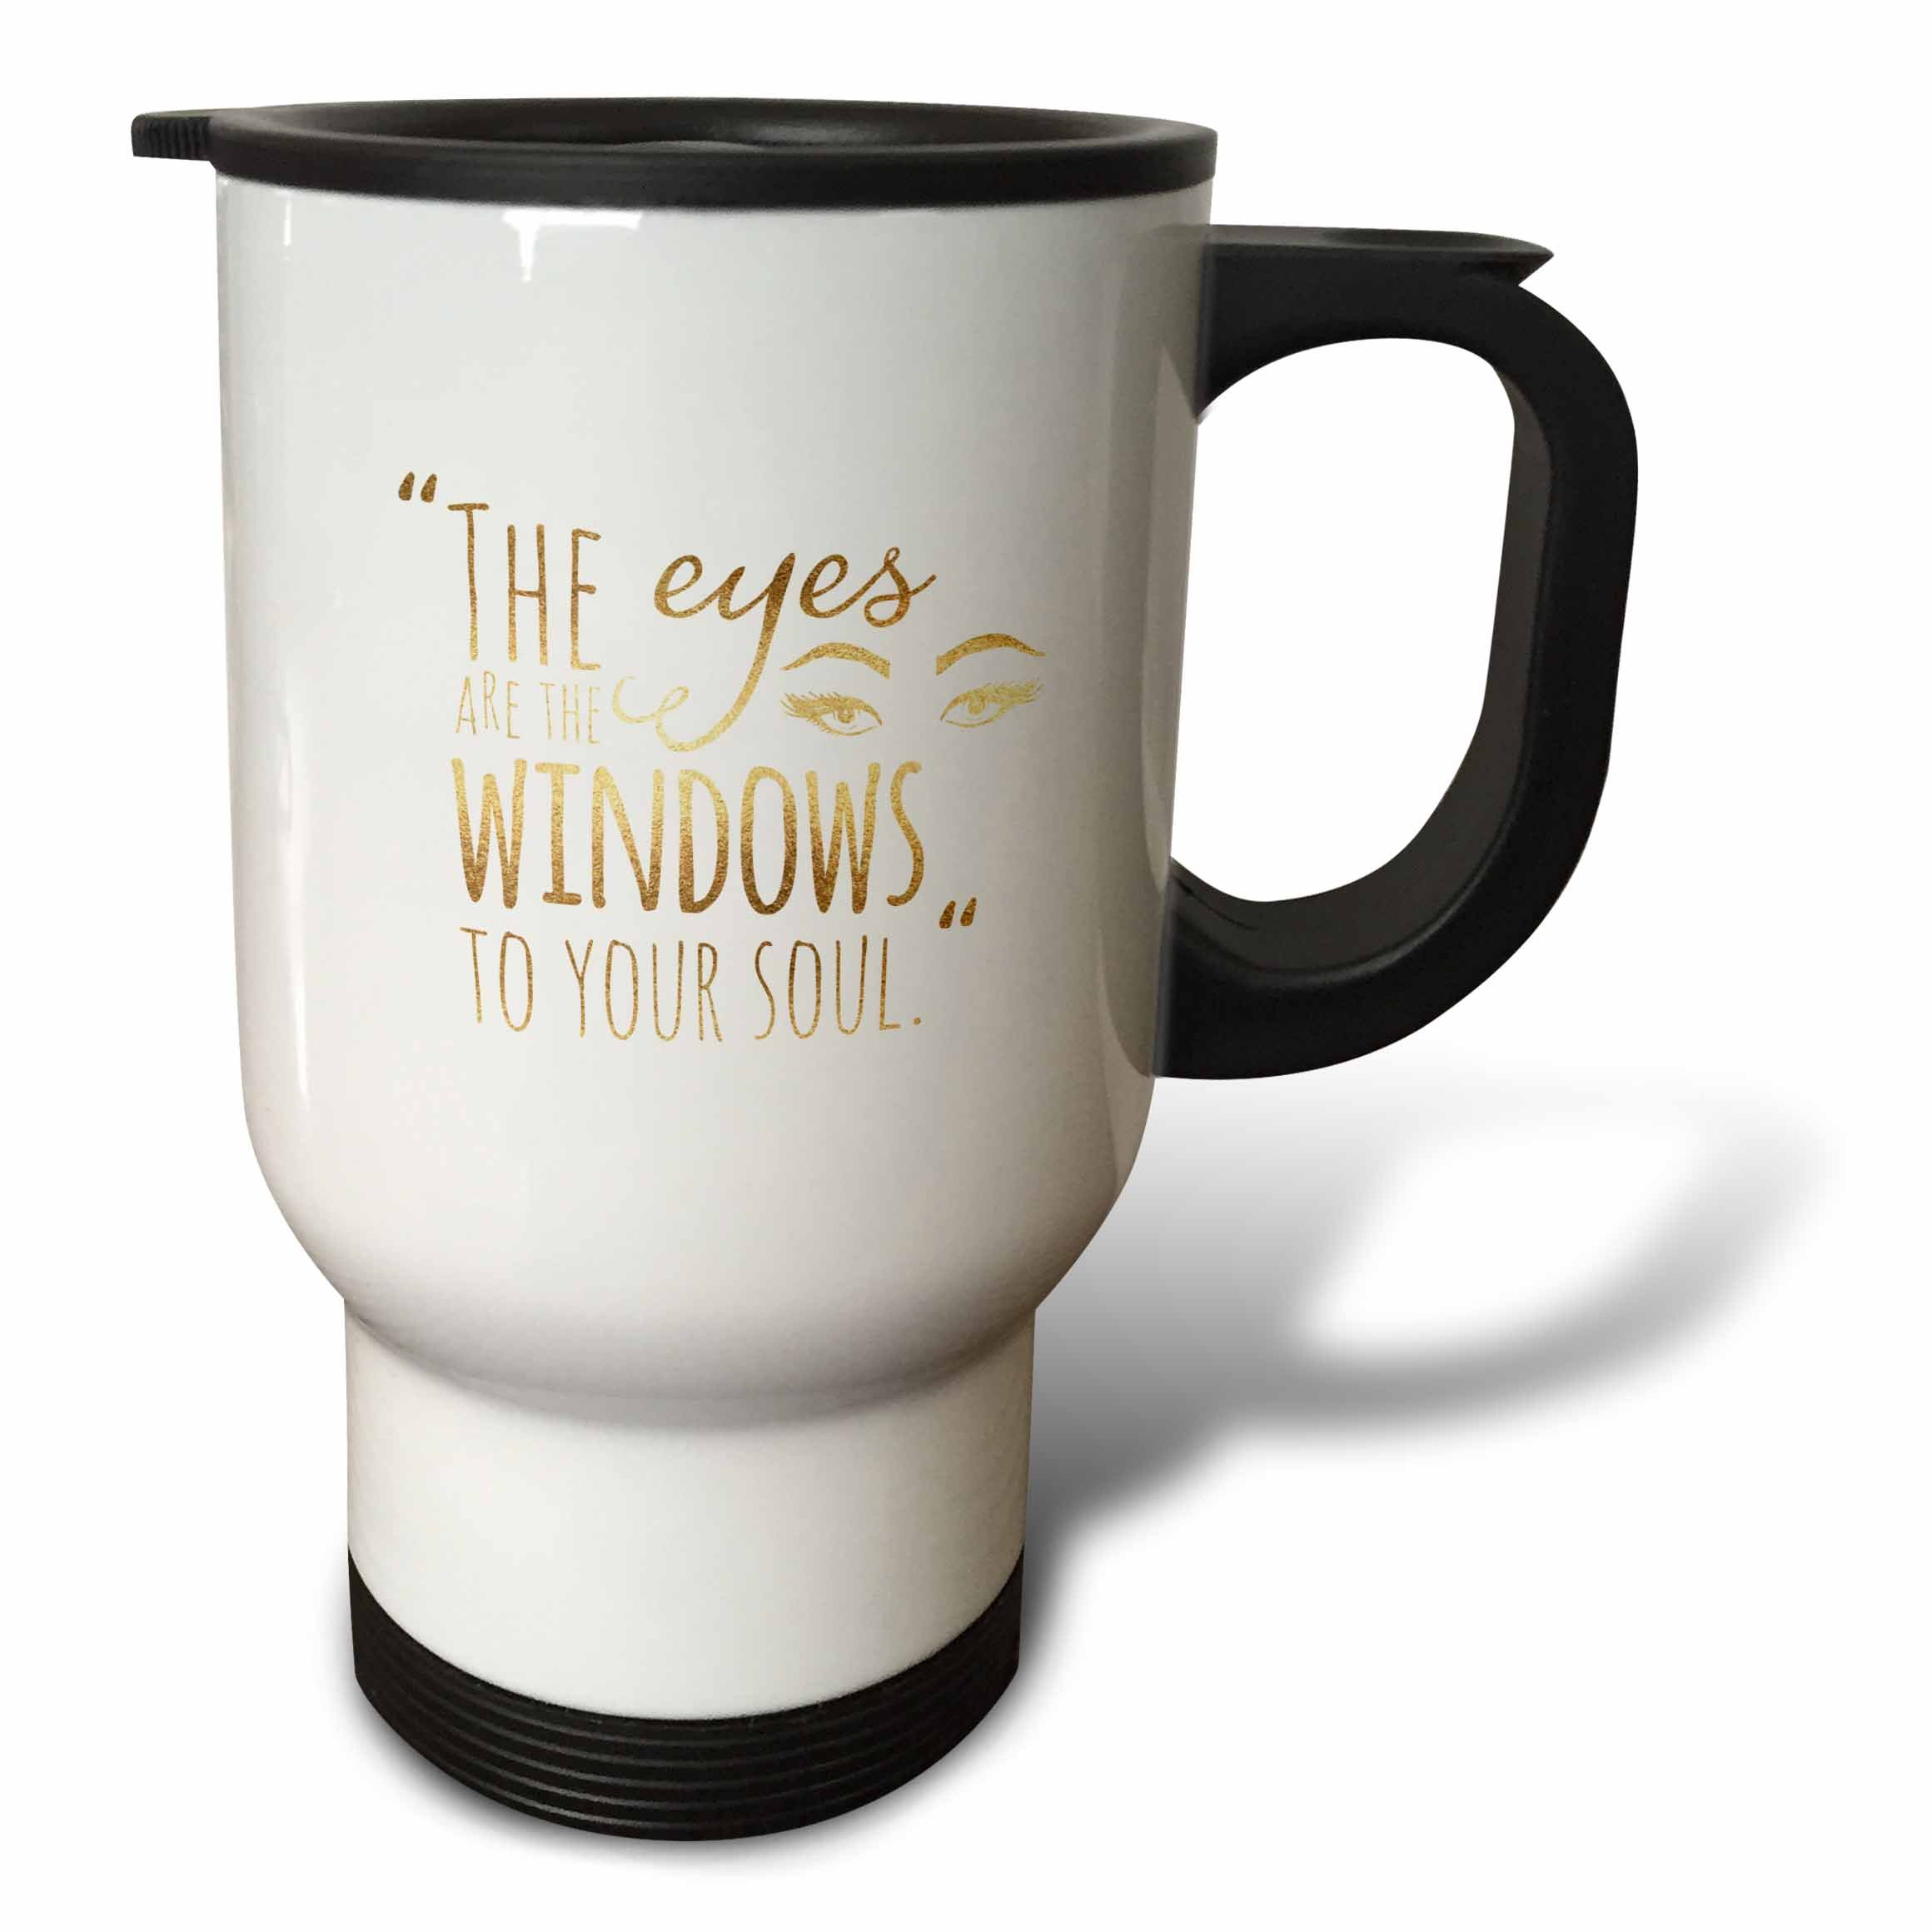 3dRose PS Inspiration - Image of Gold Eyes Are Windows to Soul Quote - 14oz Stainless Steel Travel Mug (tm_280728_1)